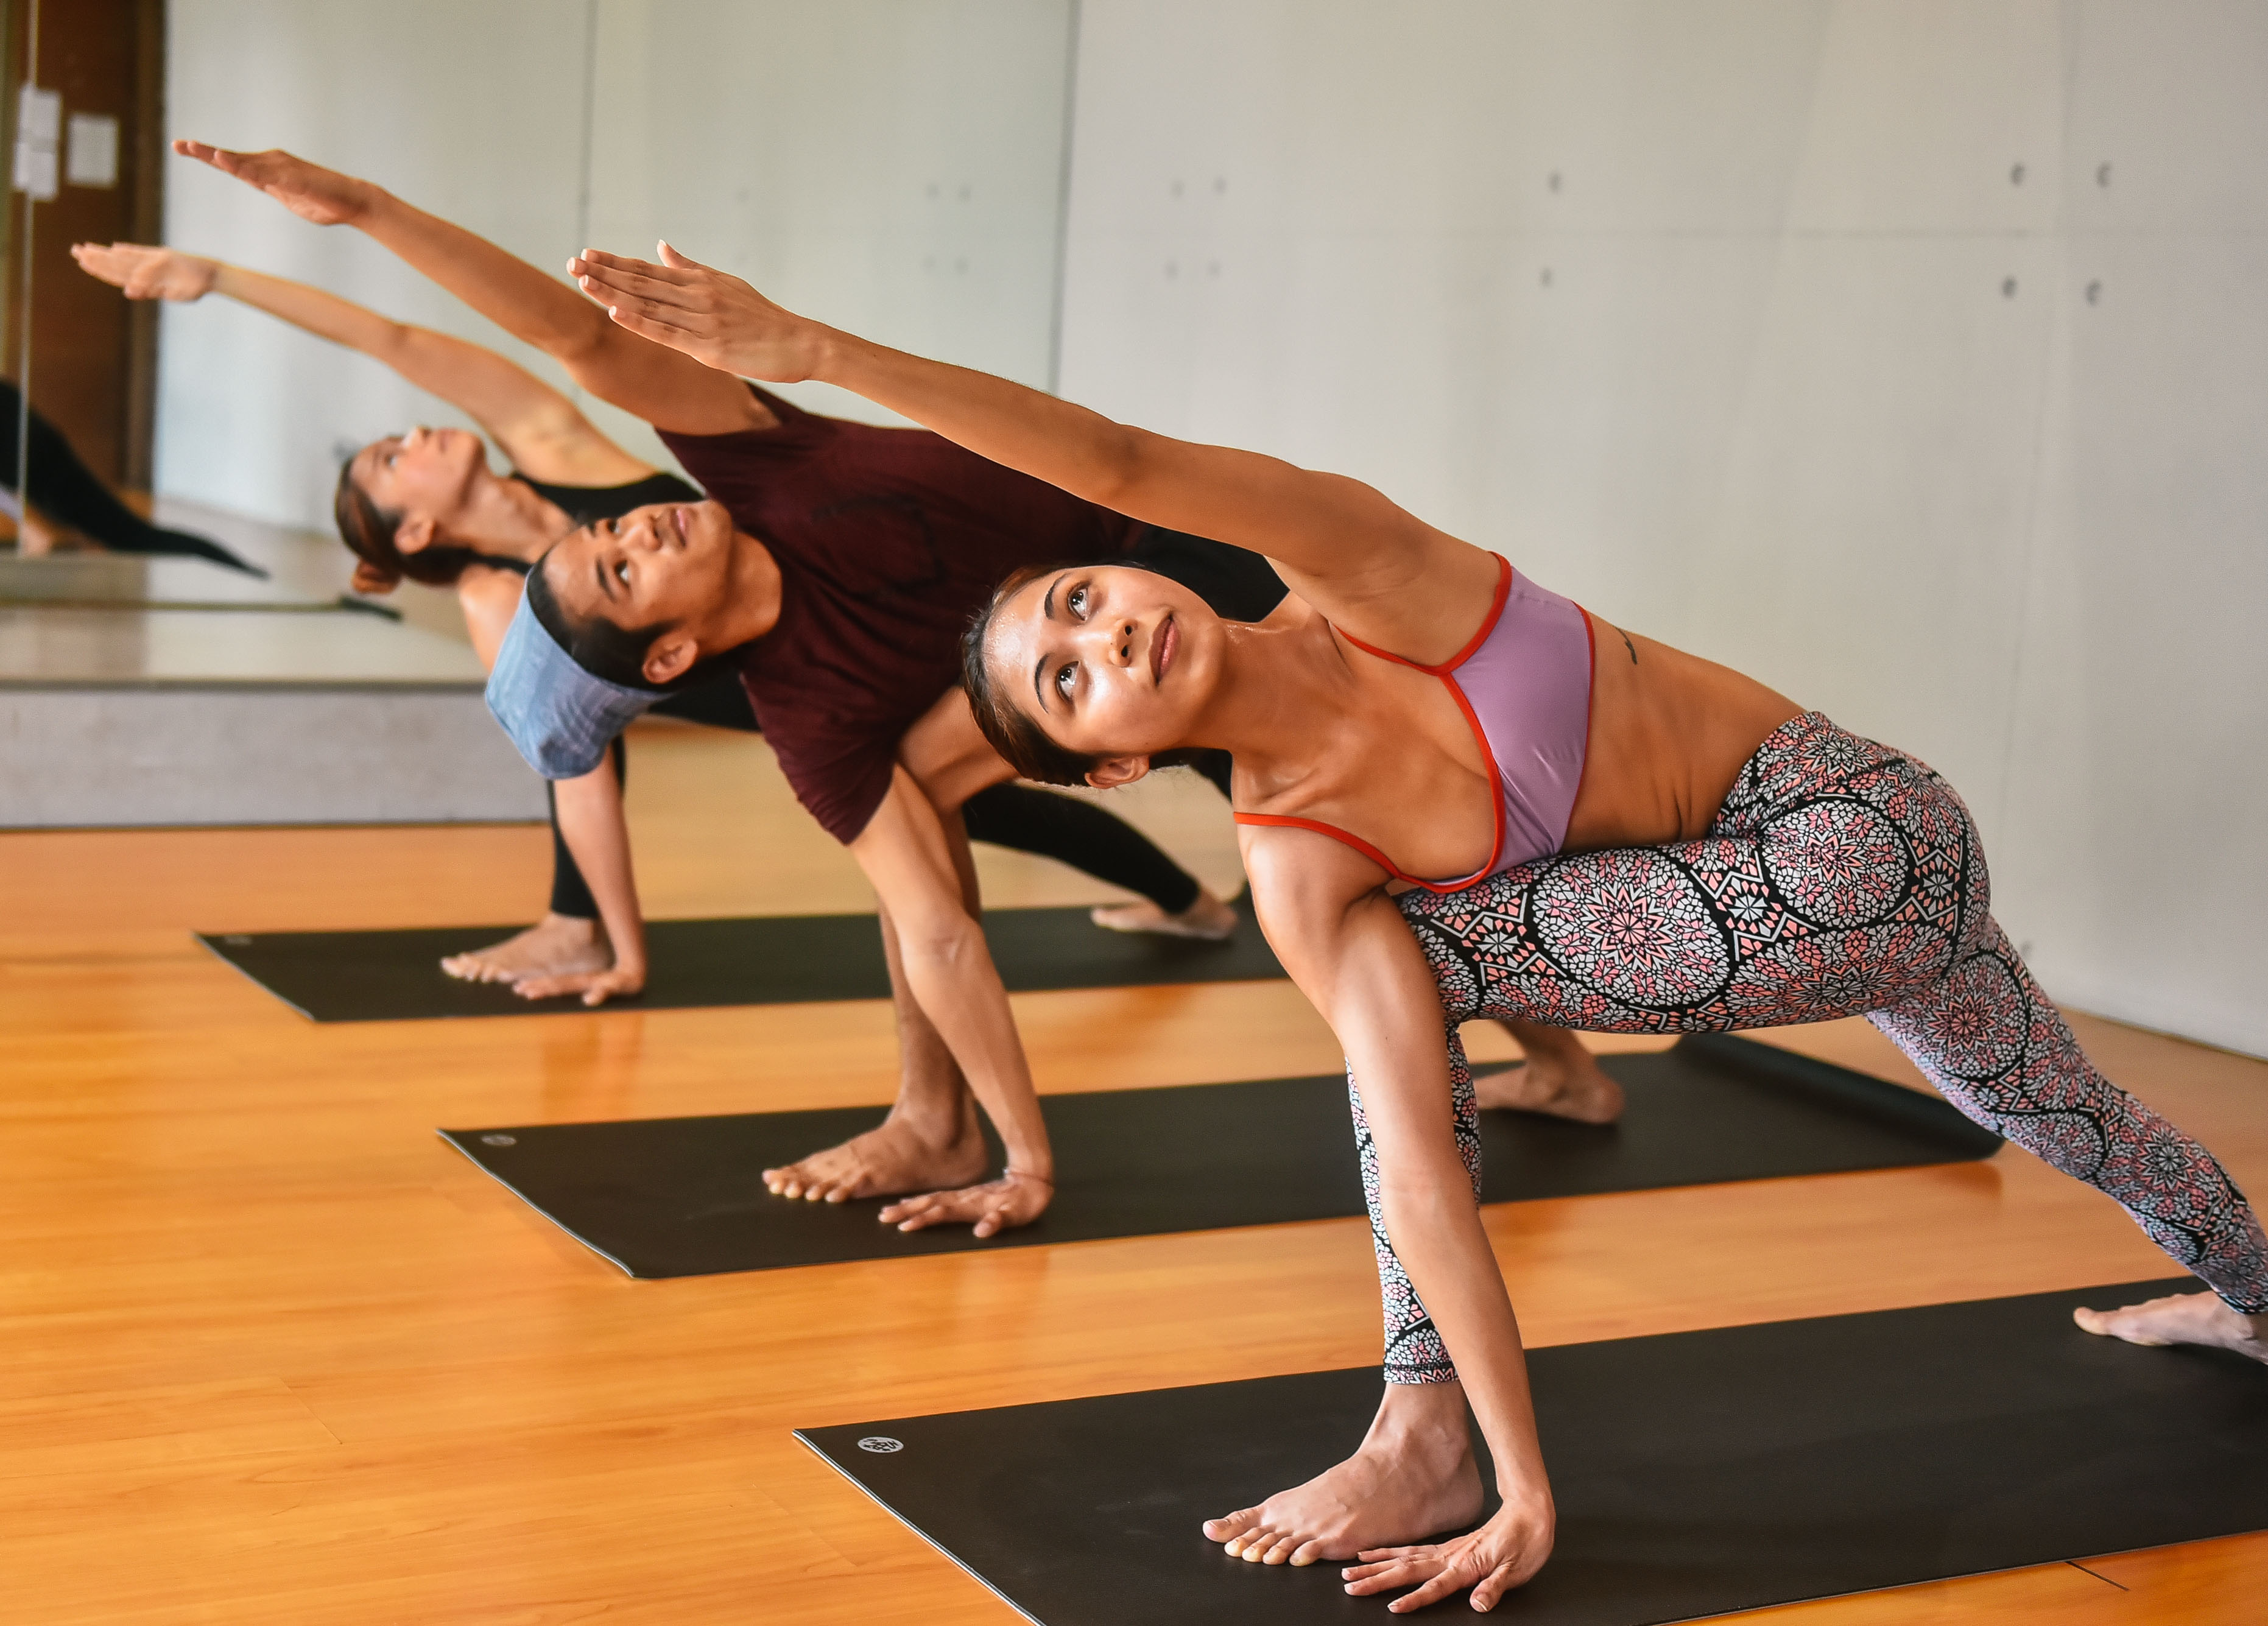 Top 10 Most Loved Yoga Studios in The Metro